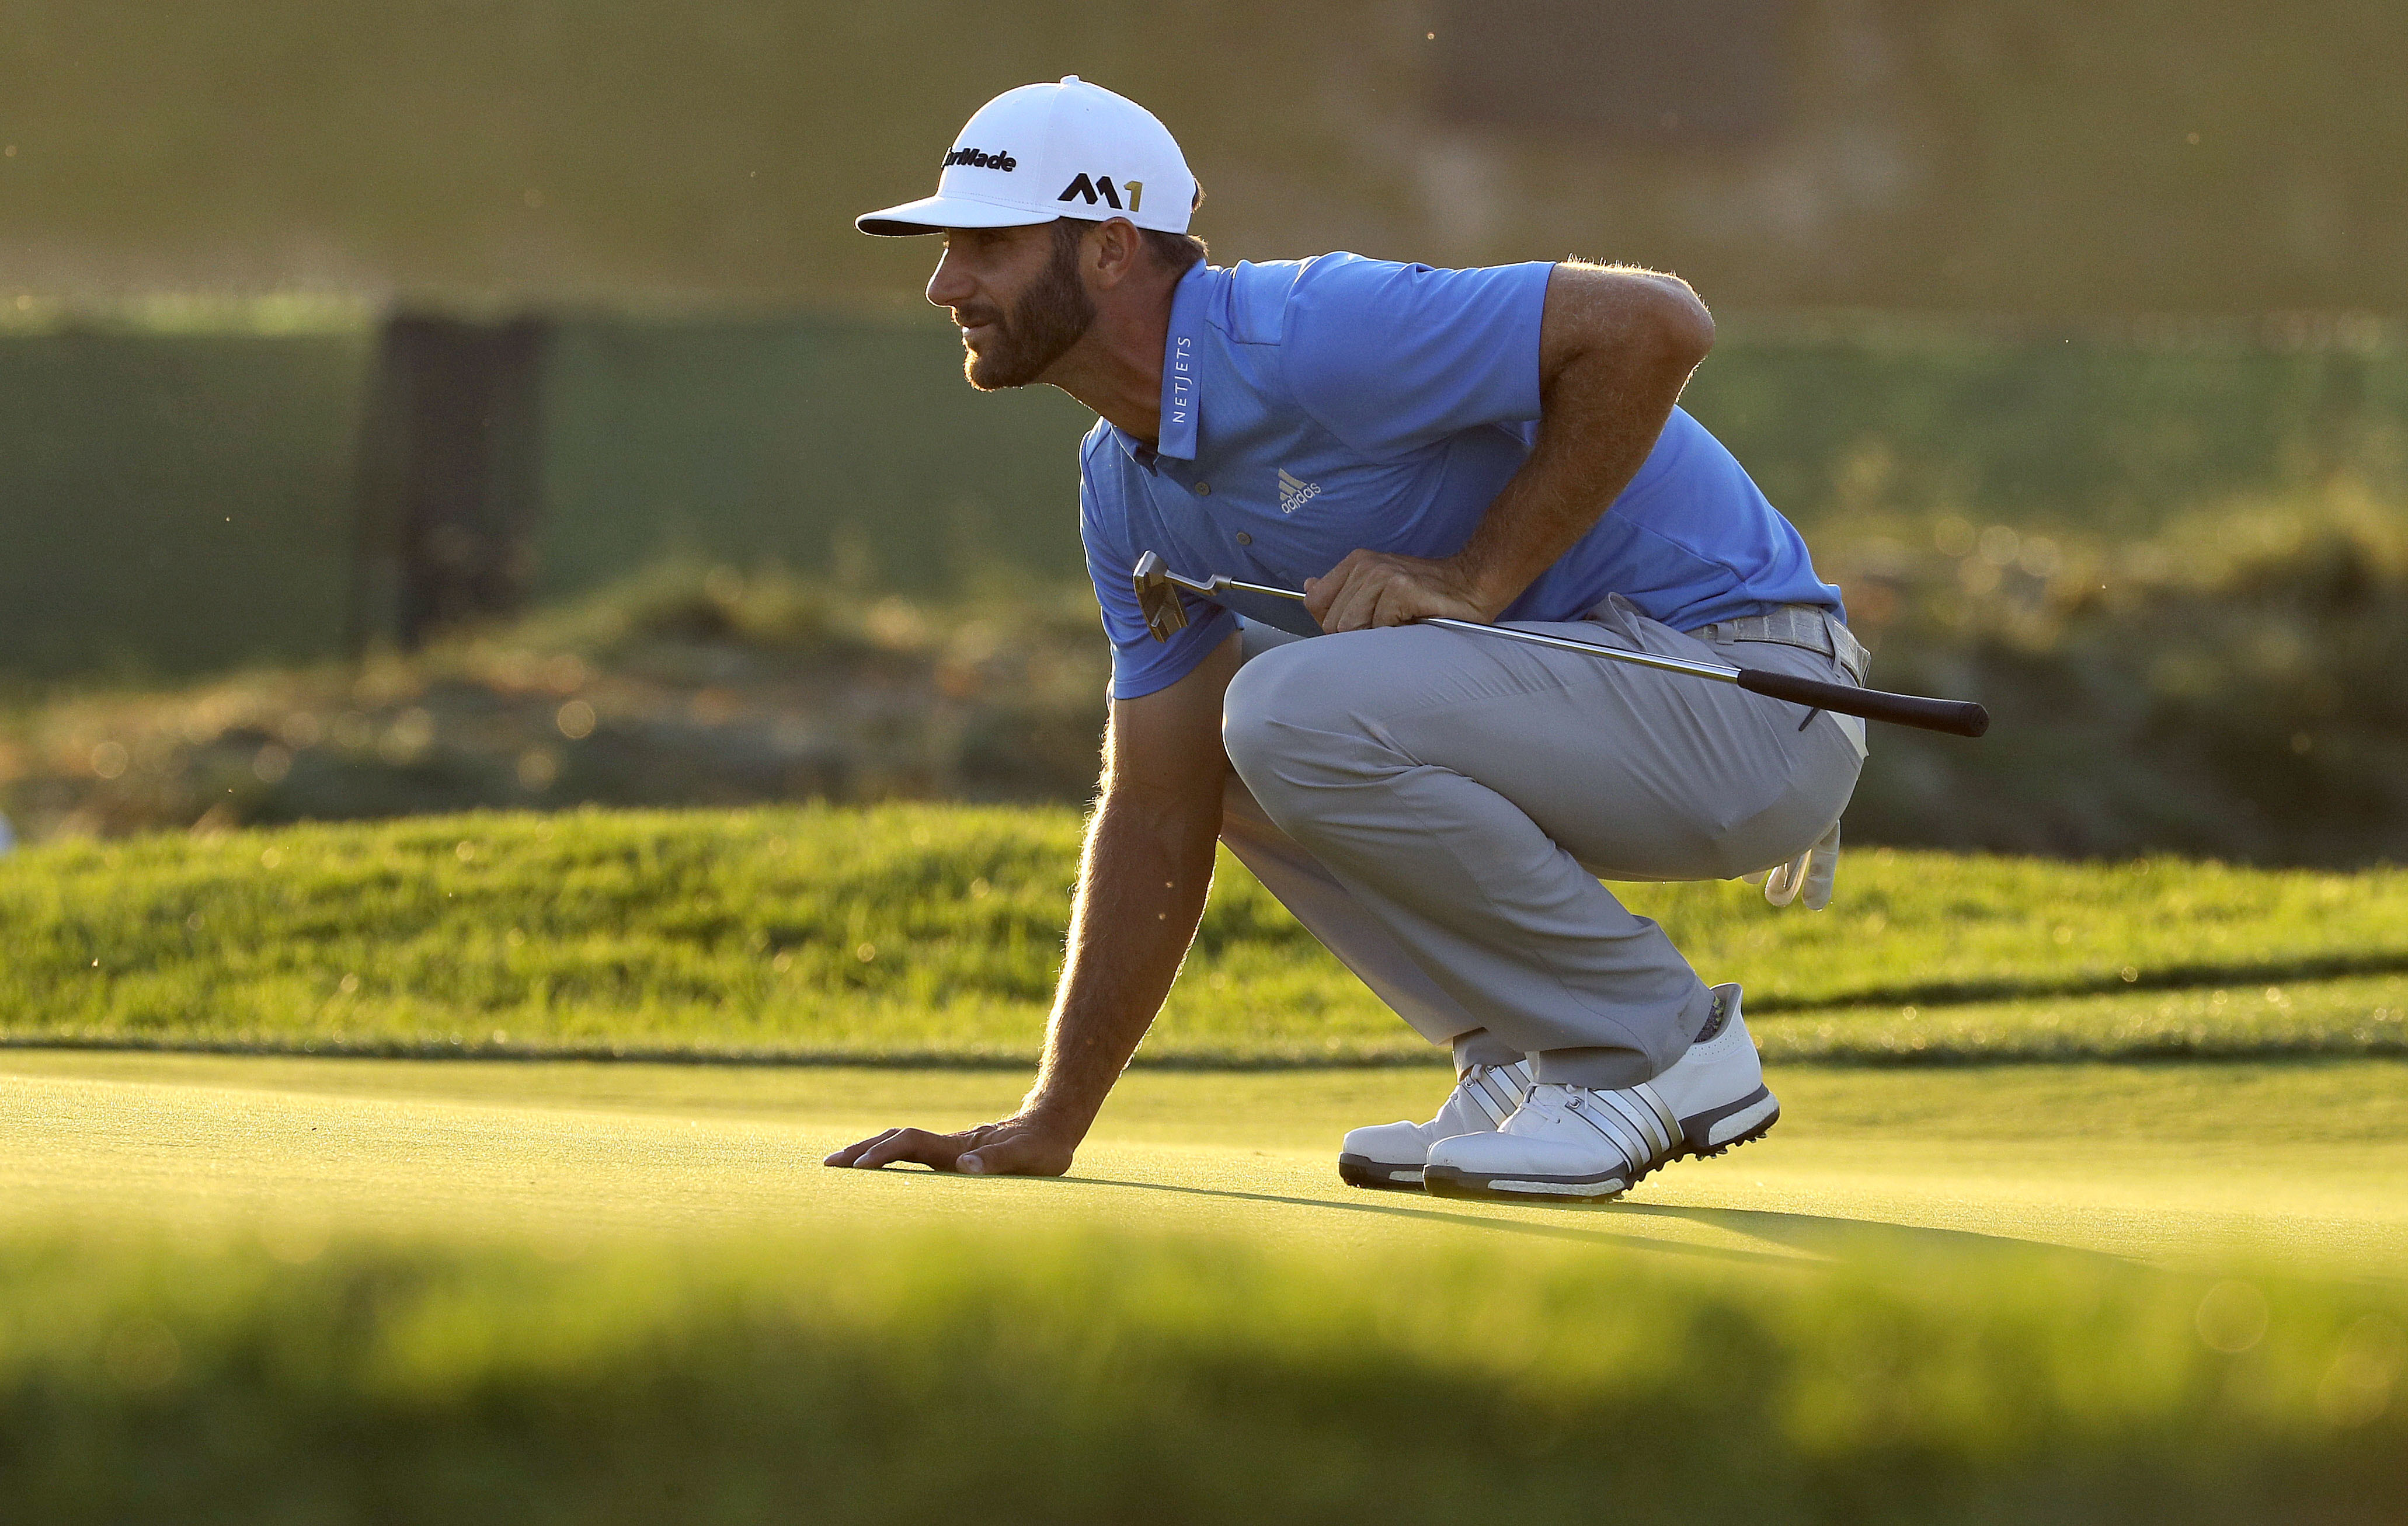 FILE - In this June 17, 2016, file photo, Dustin Johnson lines up his putt on the seventh hole during the rain delayed second round of the U.S. Open golf championship at Oakmont Country Club, in Oakmont, Pa. Dustin Johnson had the perfect temperament to h